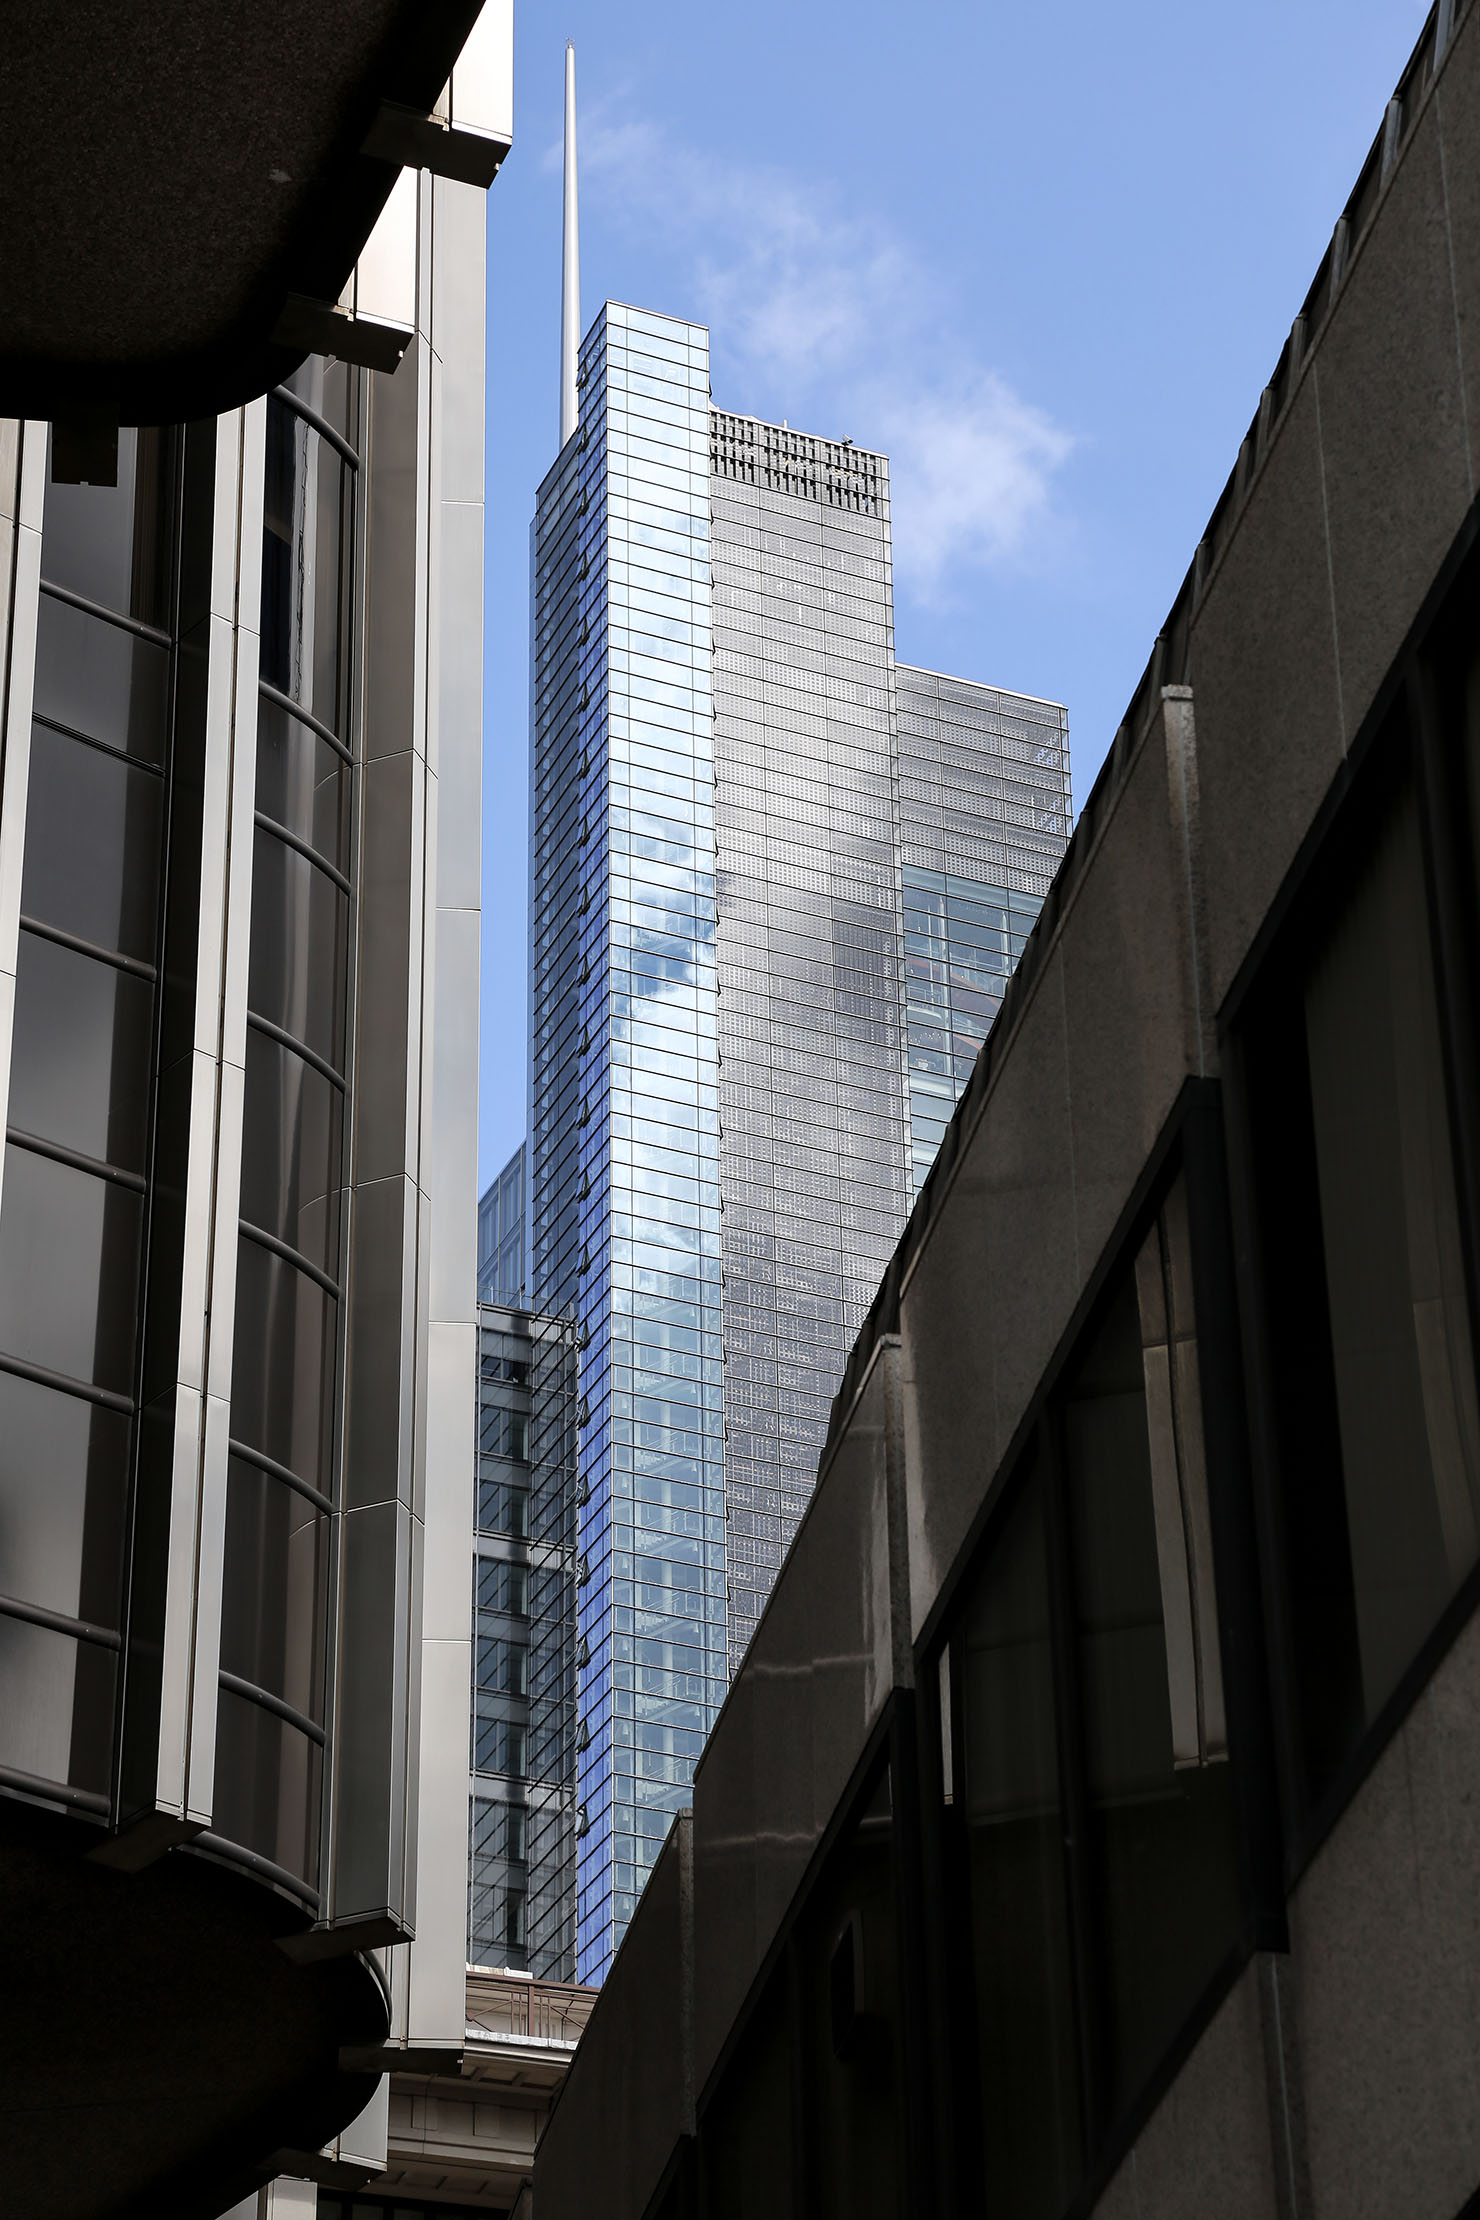 The Heron Tower, City of London